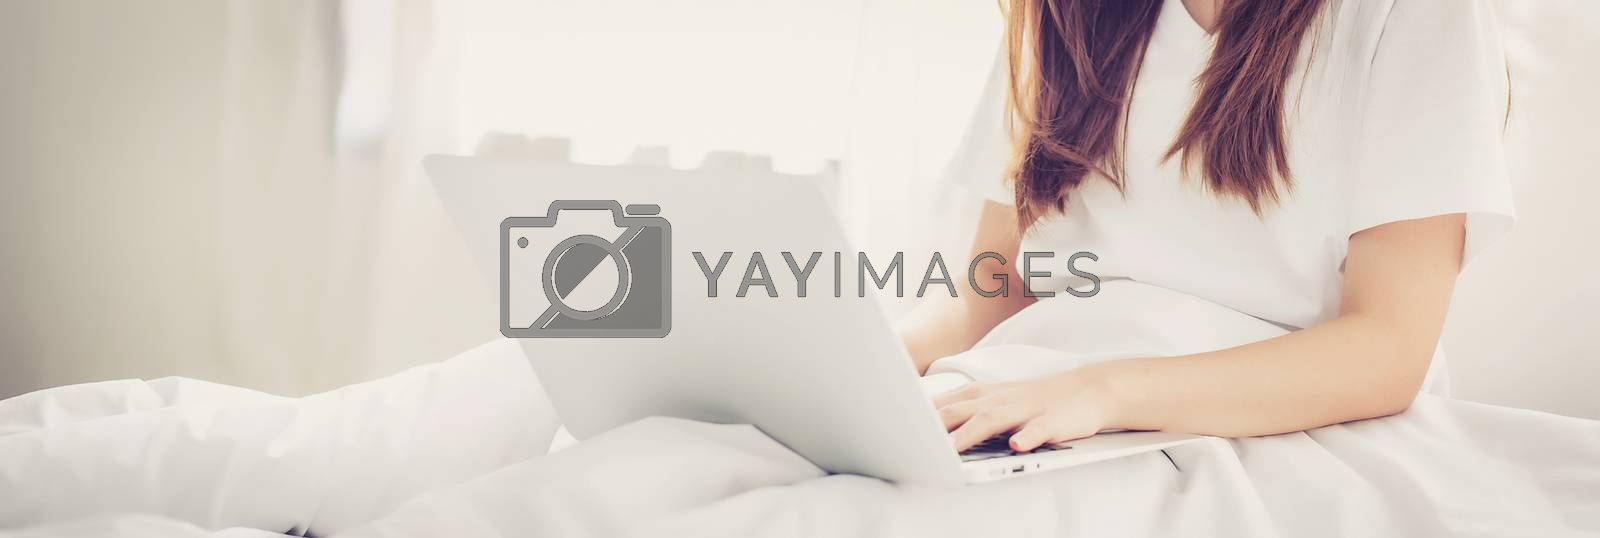 Banner website beautiful asian young woman setting on bed using laptop computer at bedroom for leisure and relax, freelance with girl working notebook, communication and lifestyle concept.